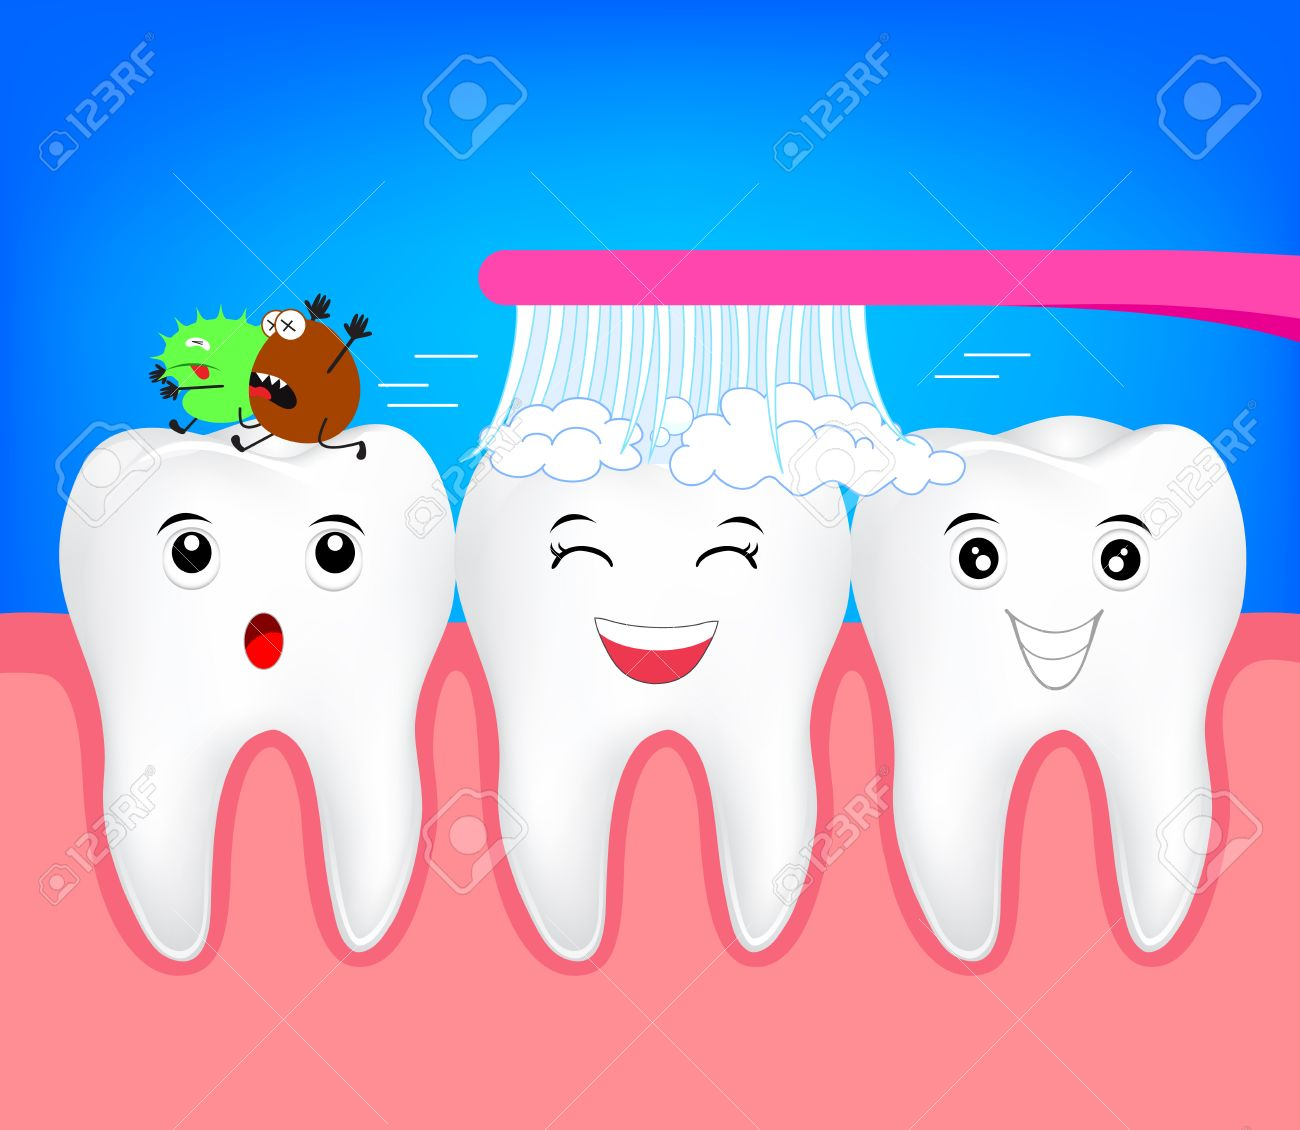 Happy cartoon character tooth with toothbrush. Kill bacteria in the mouth concept. Illustration for dental care. - 83556455